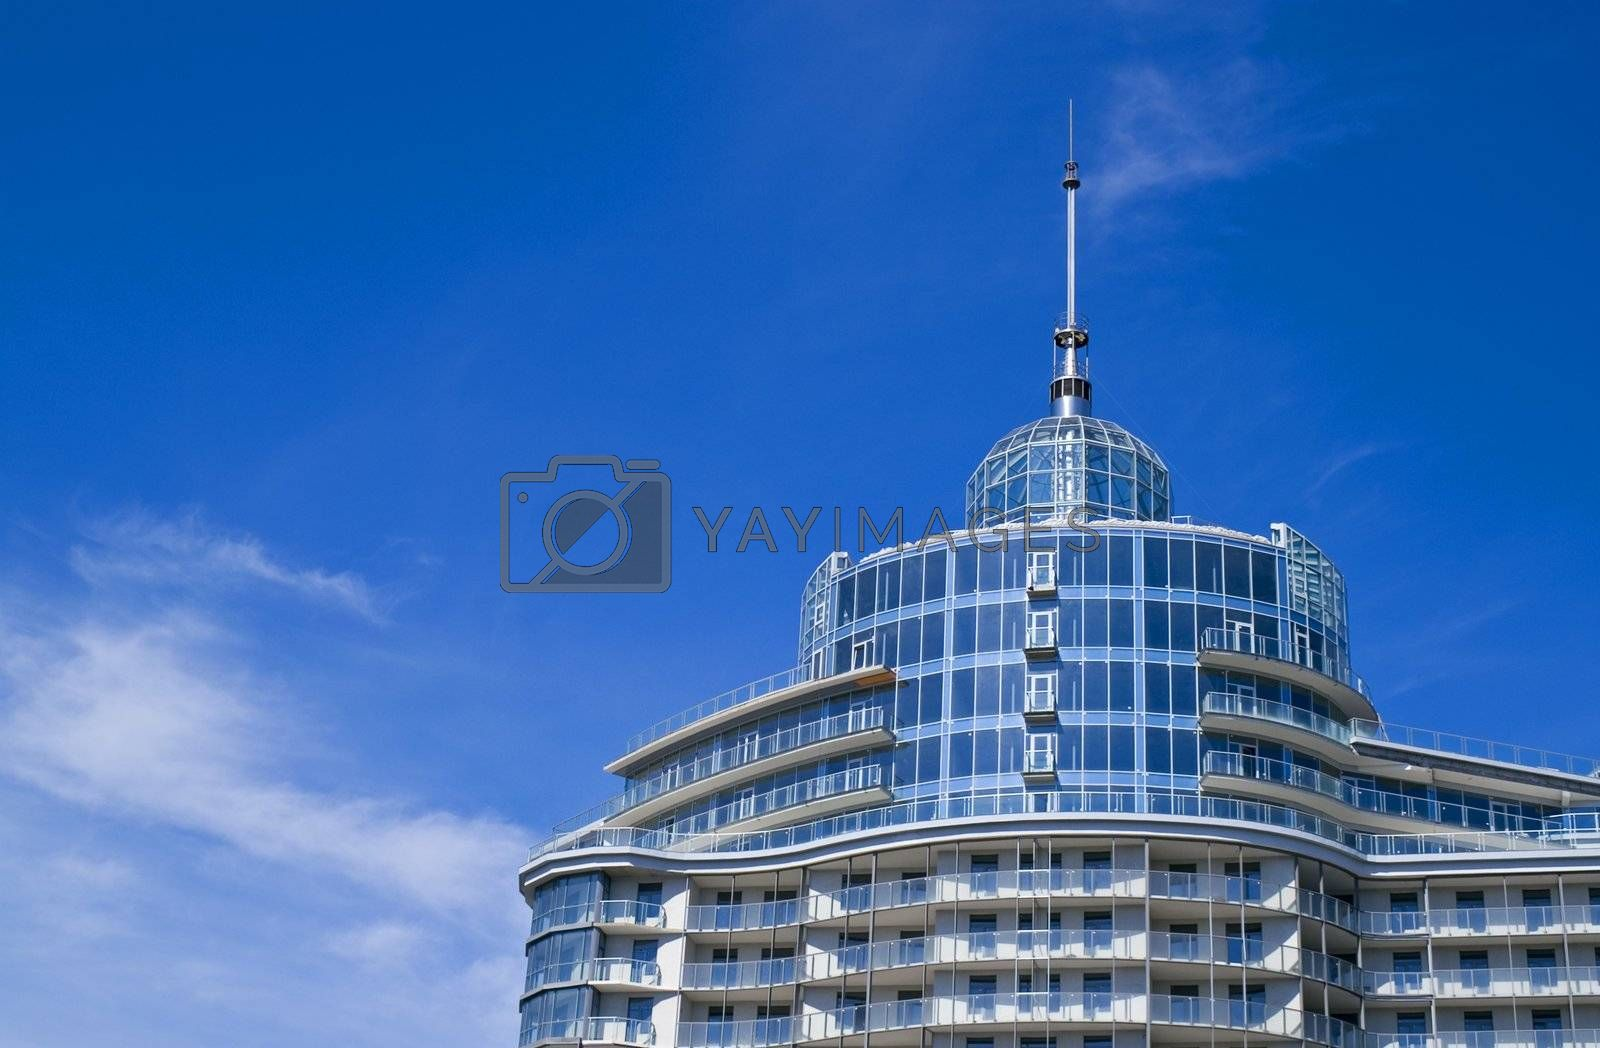 The top of a new building of a hotel or business center.